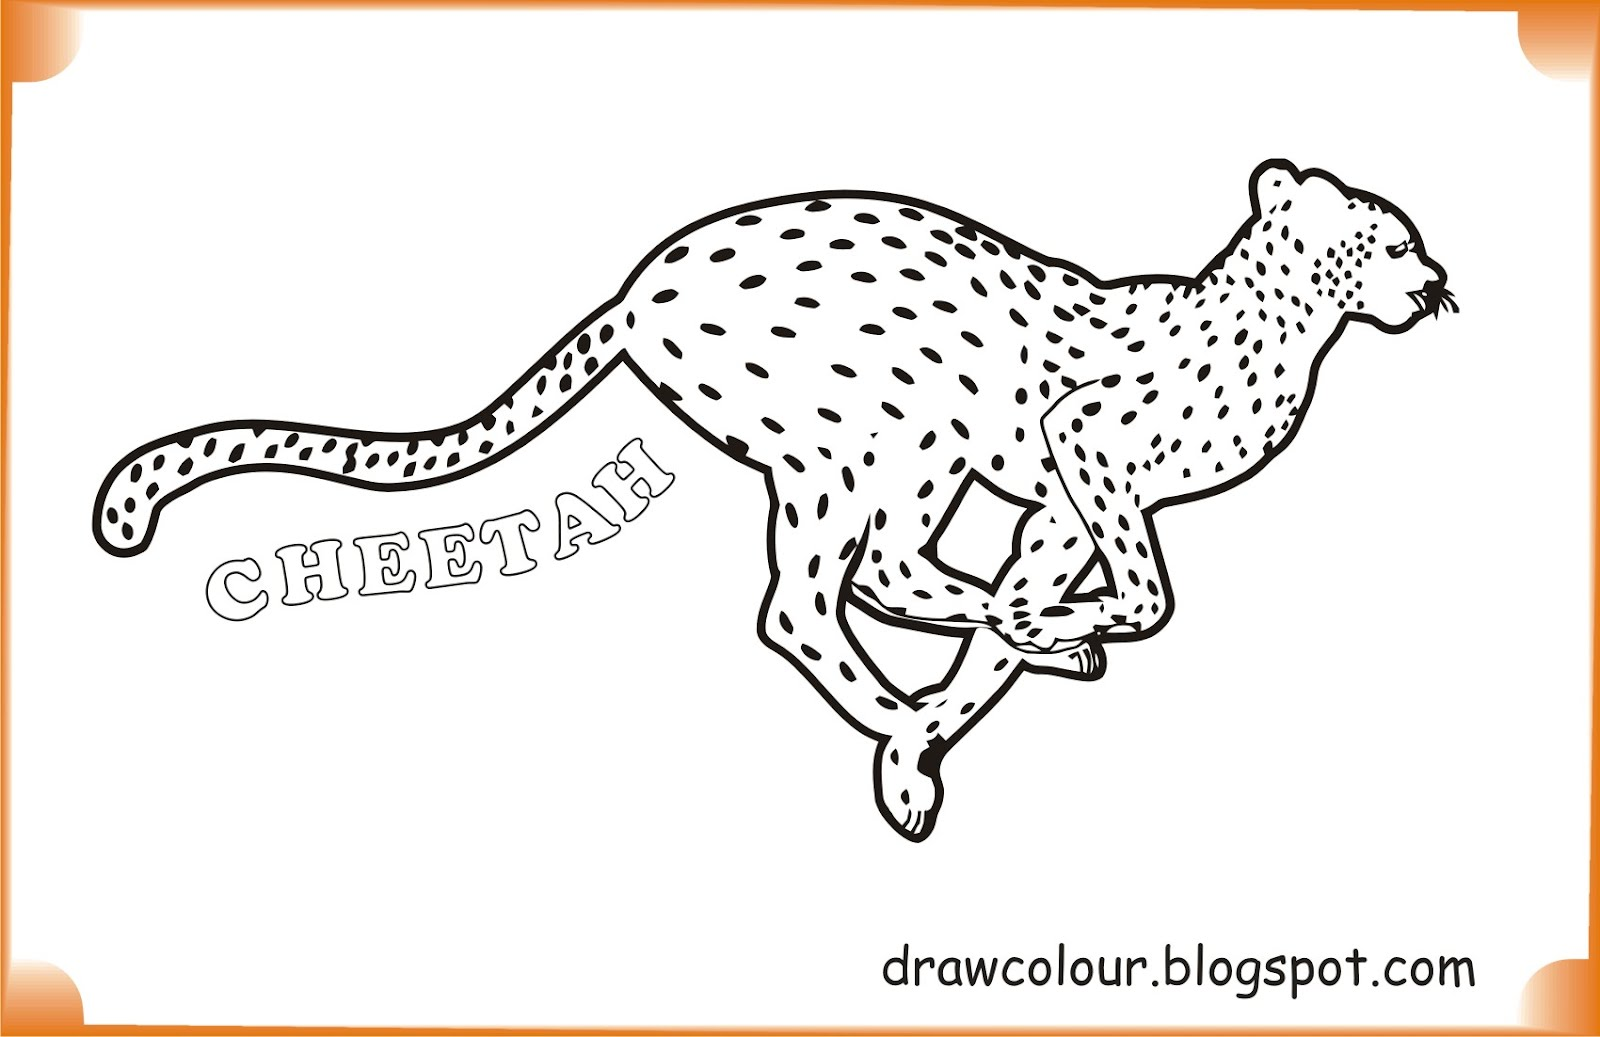 Cheetah drawings with color - photo#45